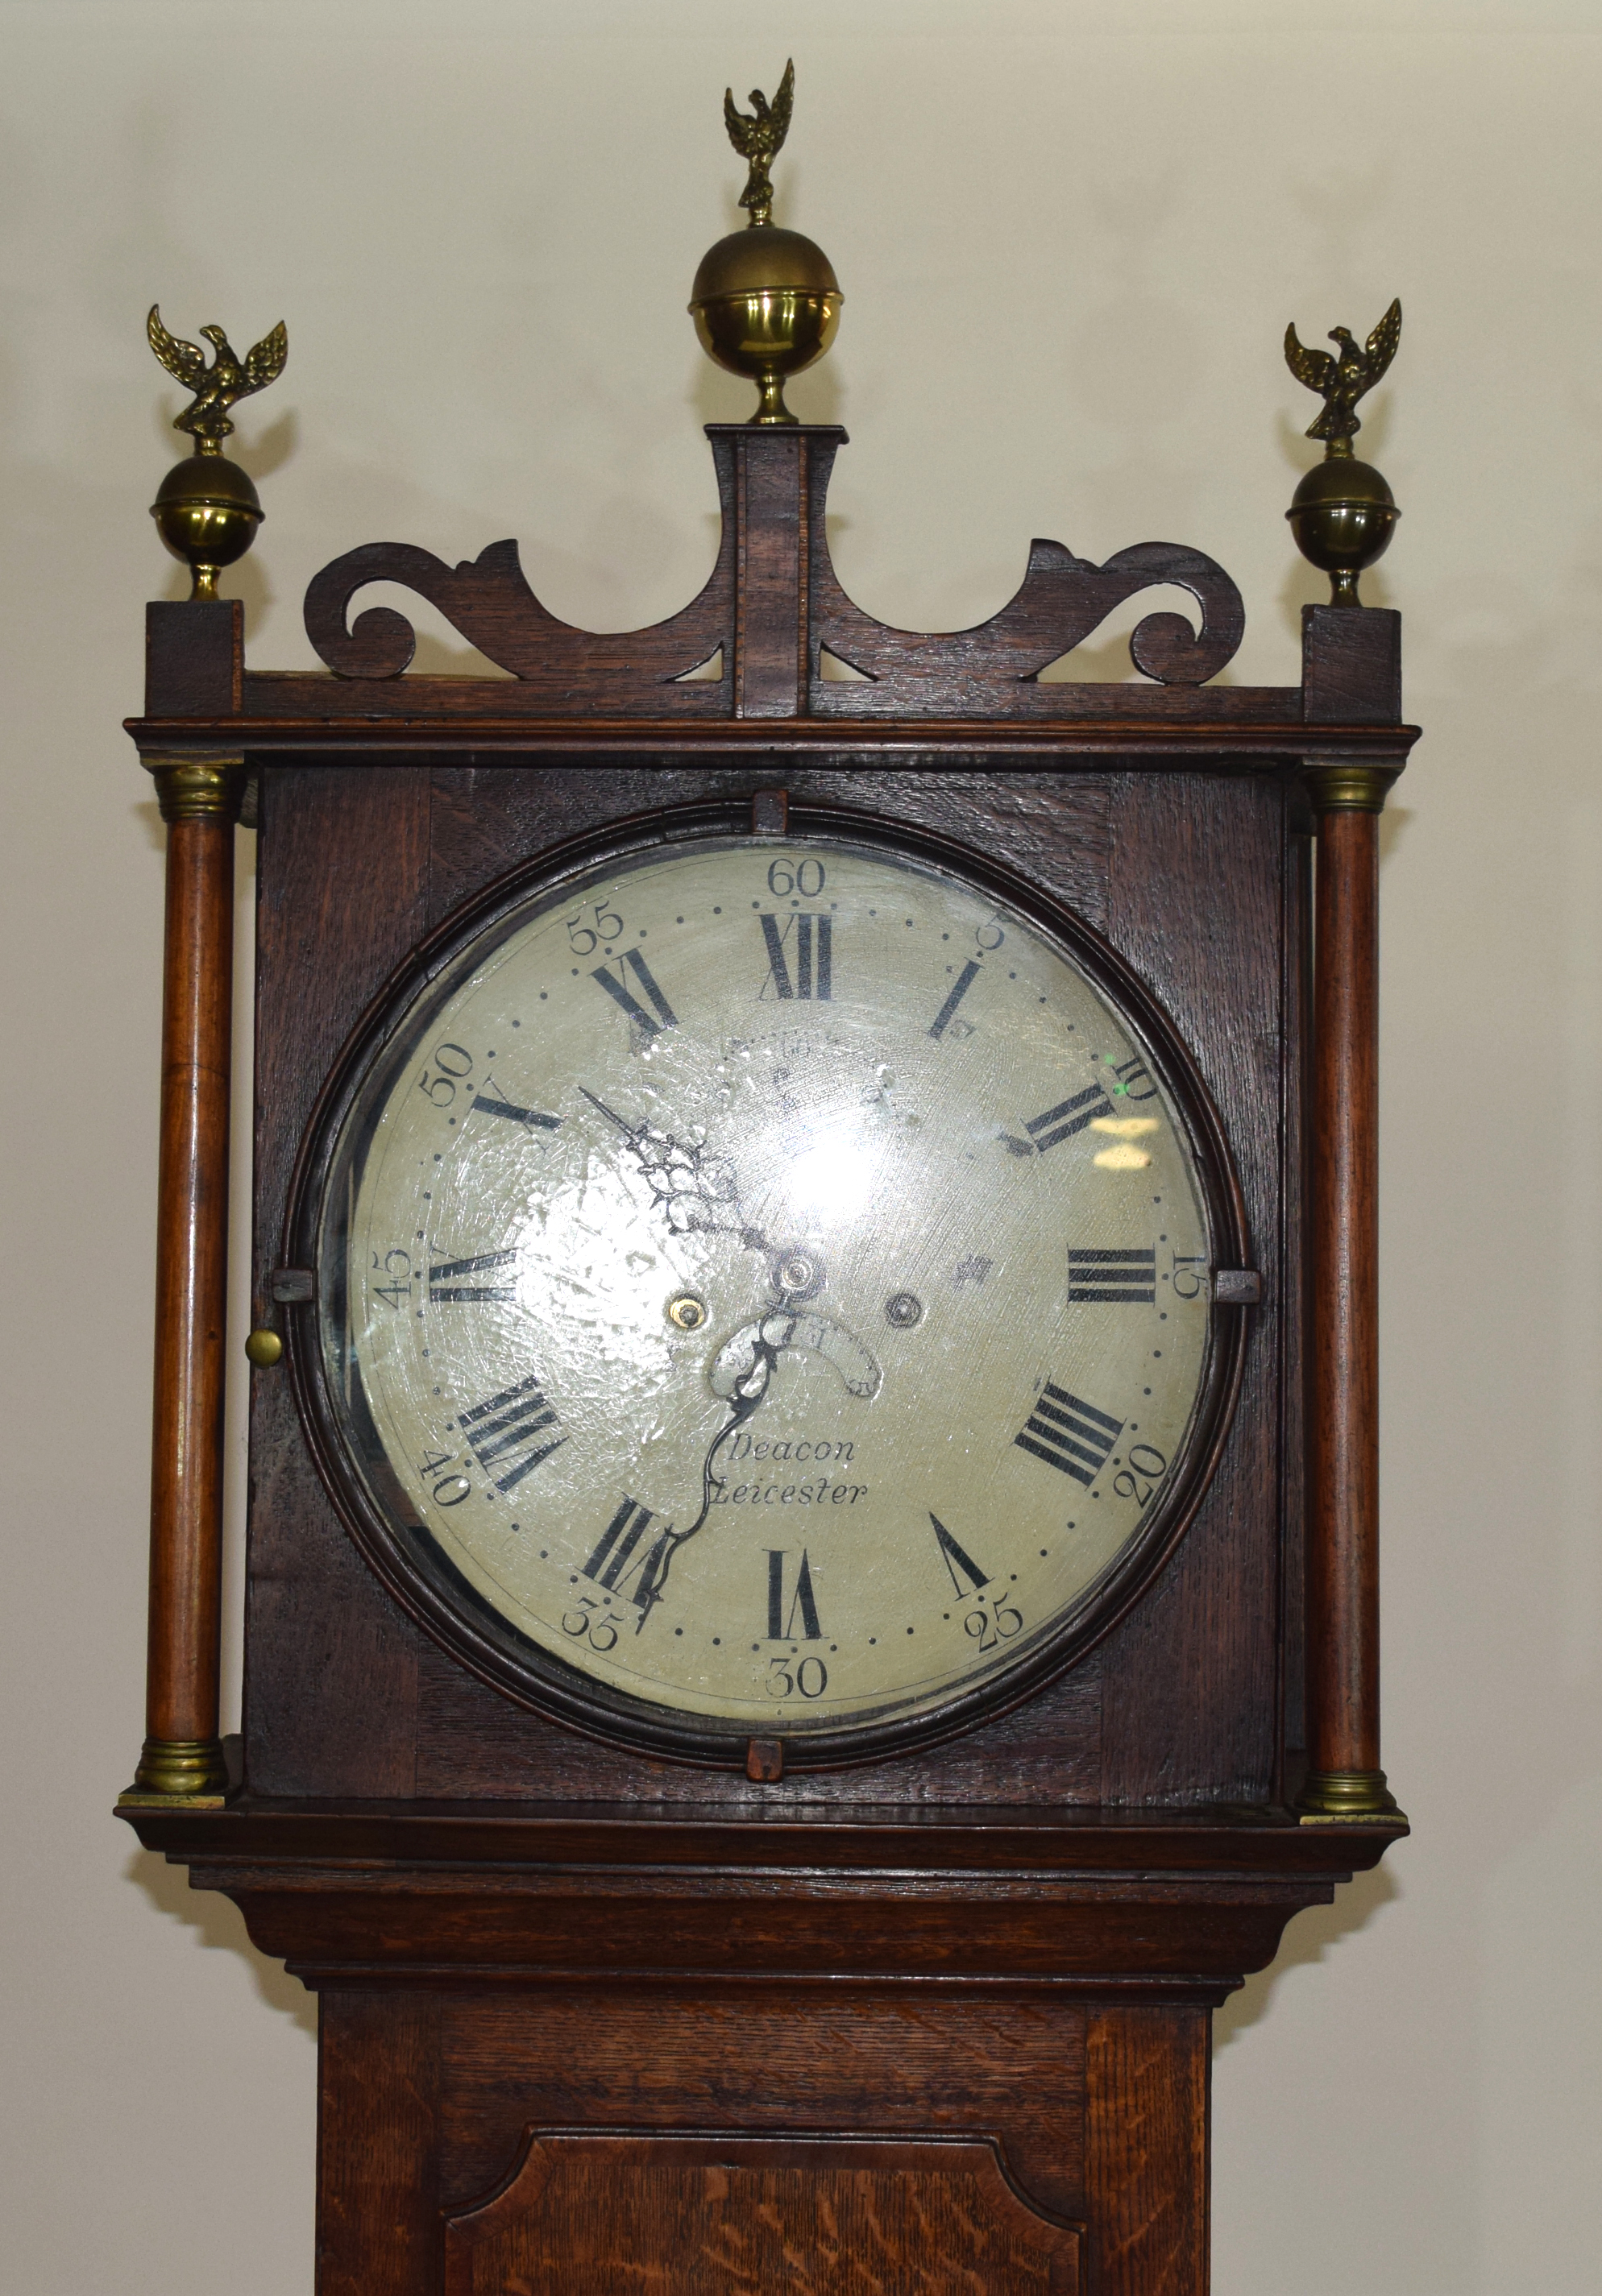 Deacon, Leicester, George III longcase clock with circular face with Roman and Arabic numerals and - Image 5 of 5